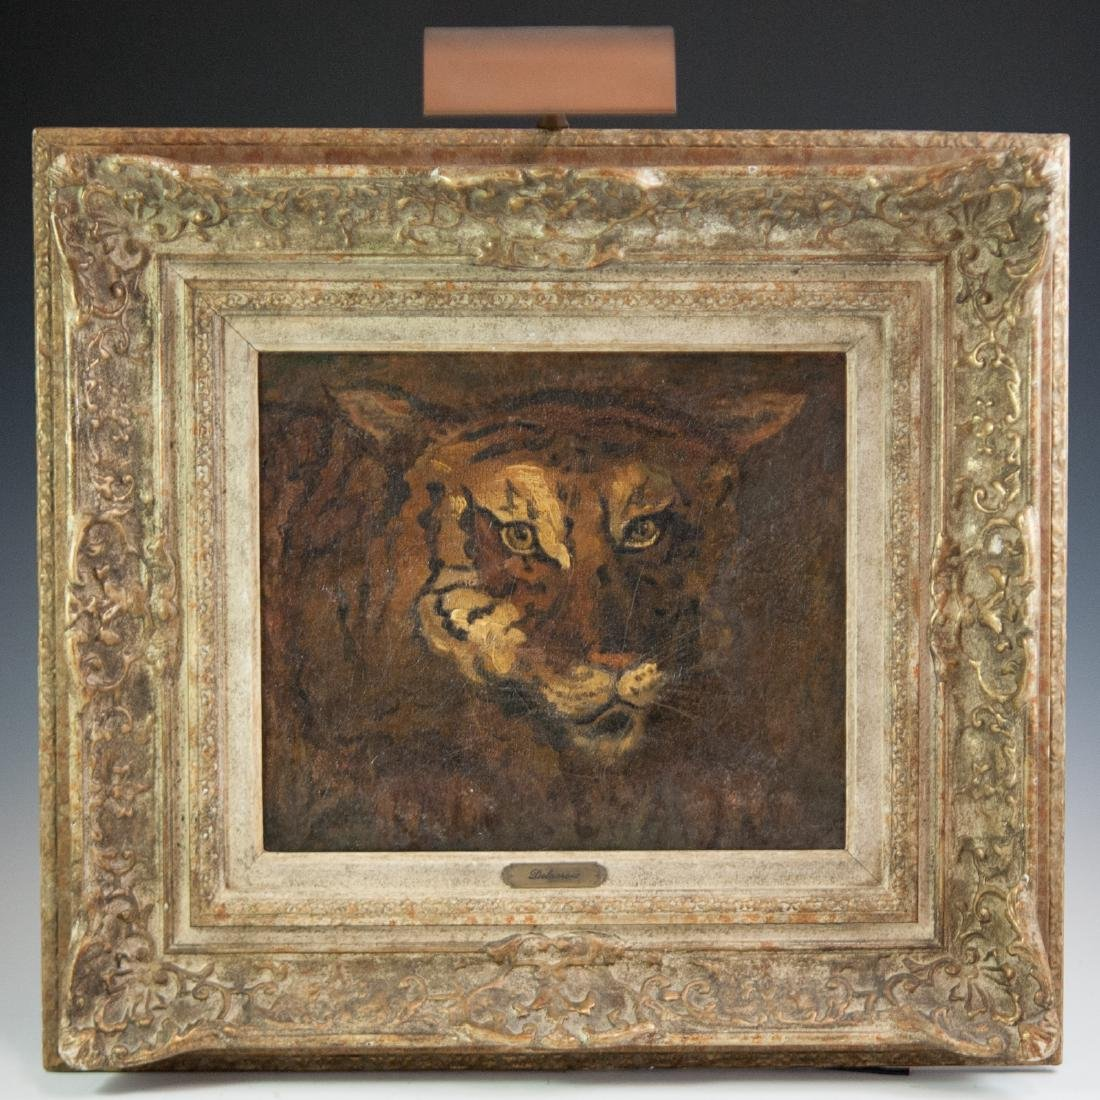 Attributed to Eugene Delacroix (French 1798-1863)